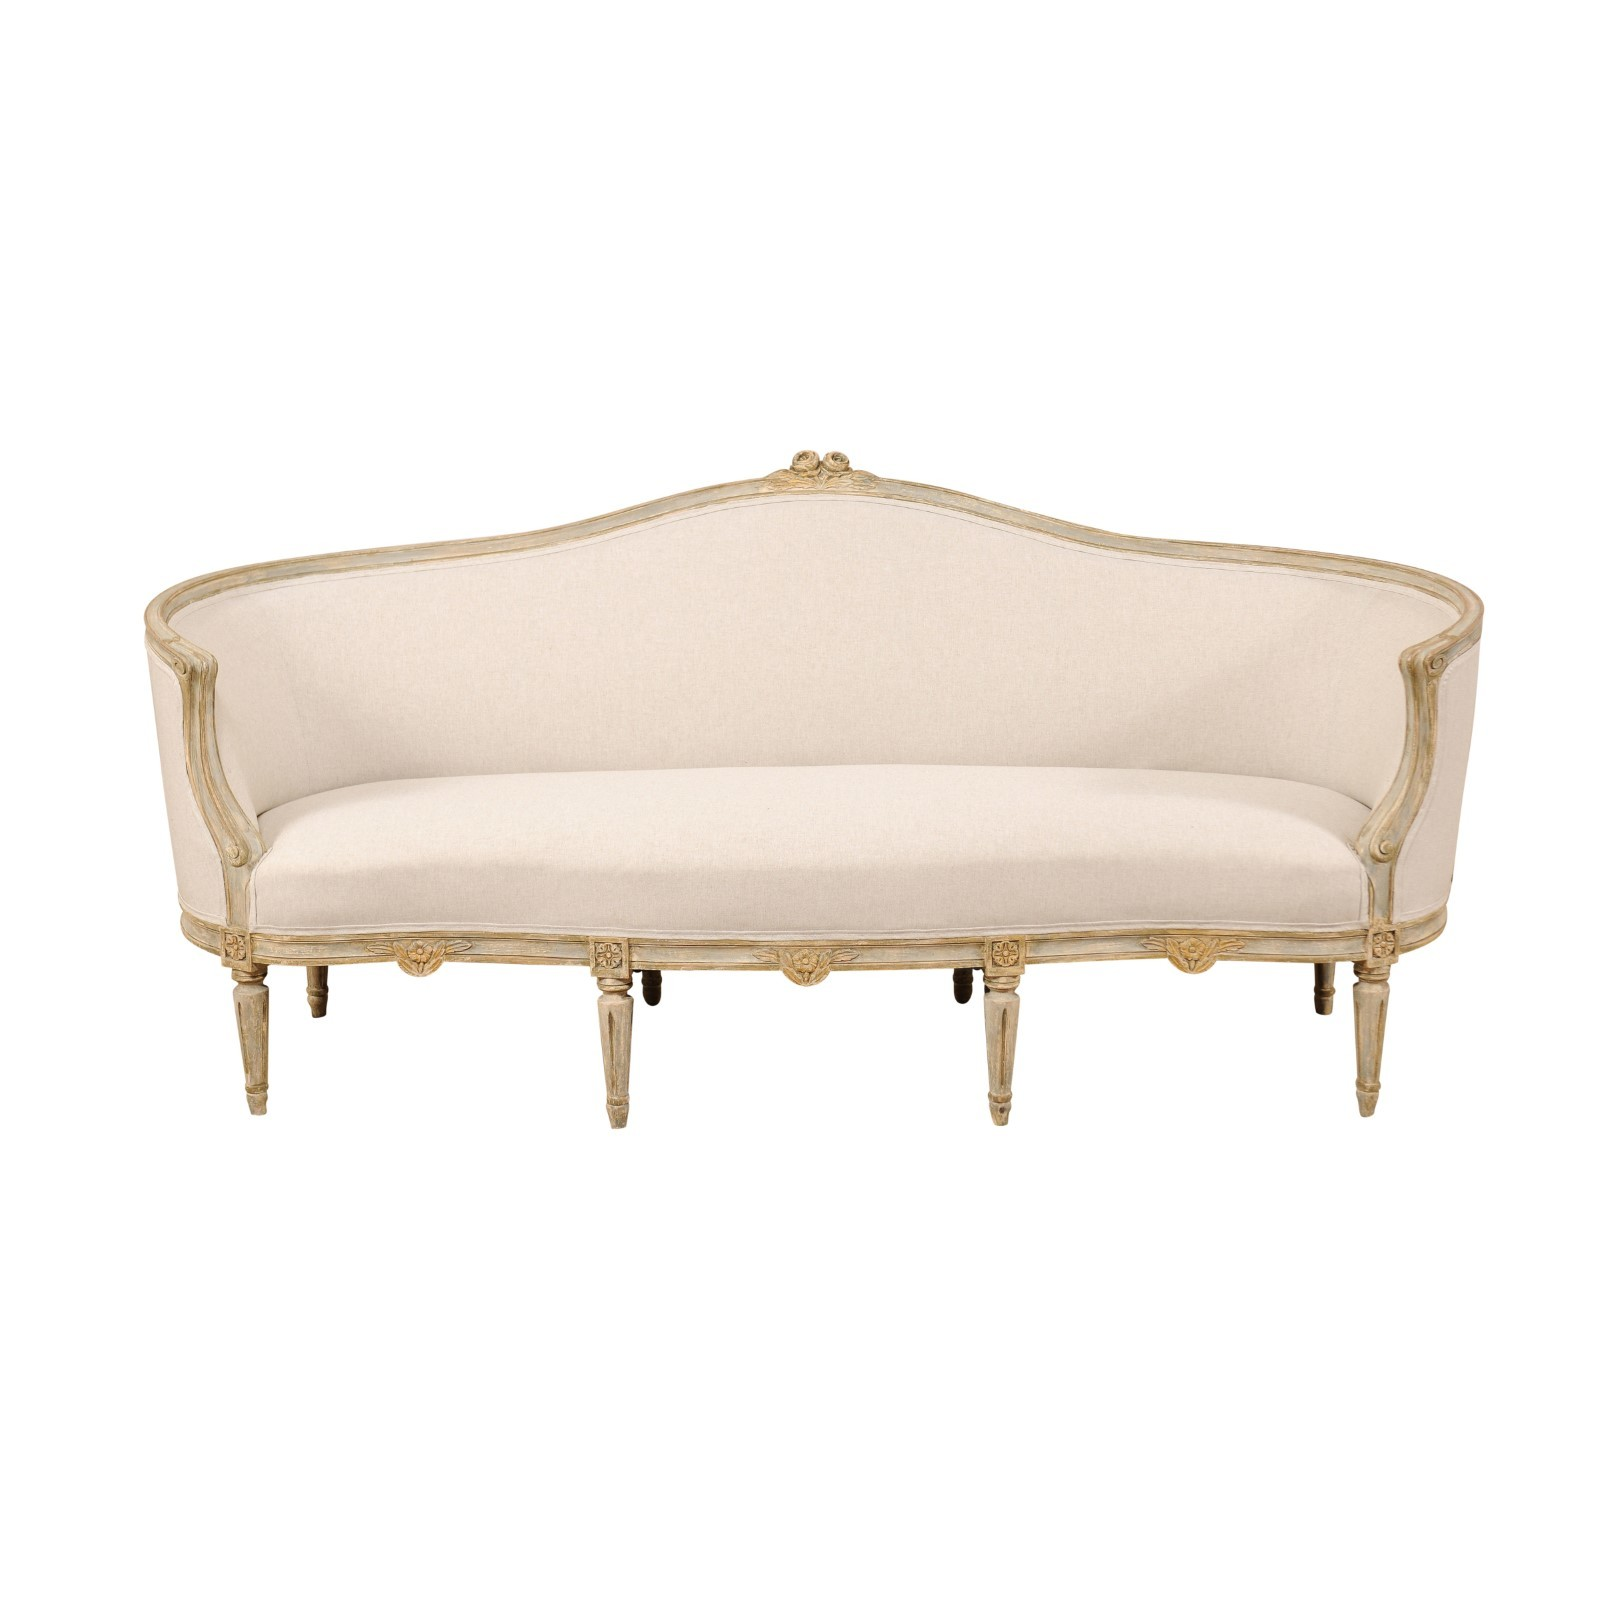 Late Gustavian Barrel-Back Upholstered Sofa